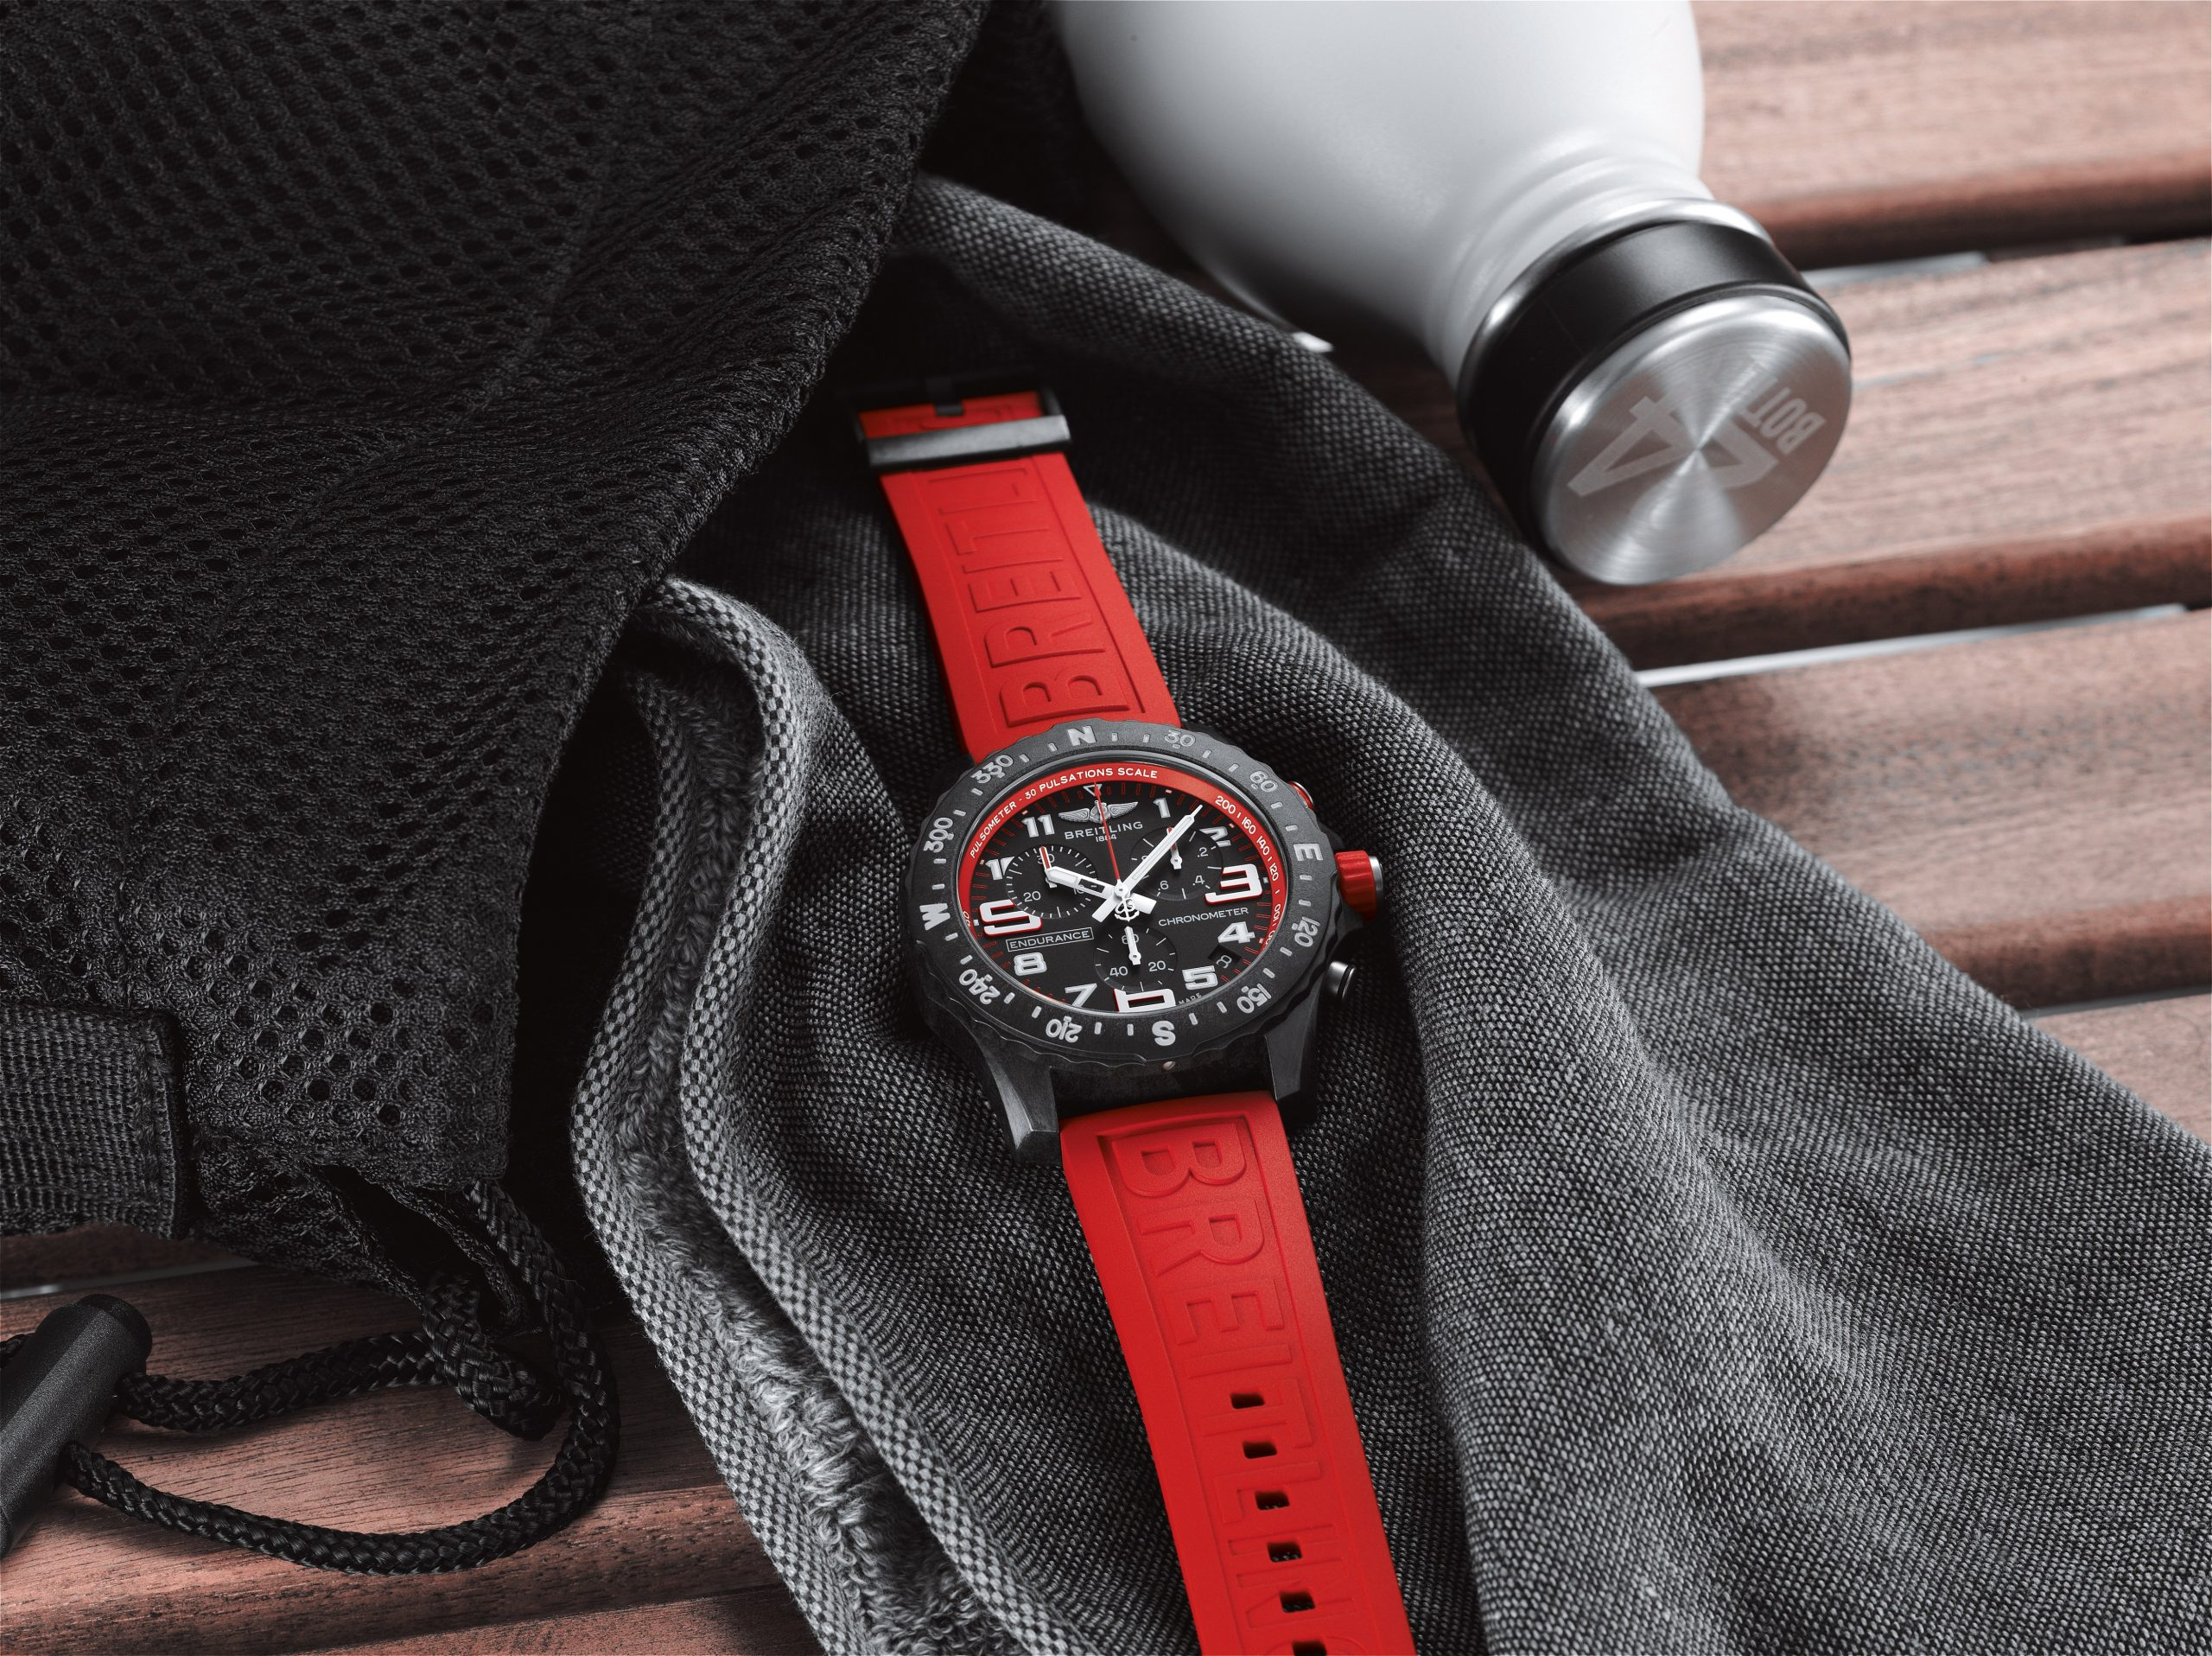 https://sport360.com/article/other/cycling/345913/breitling-confirmed-as-uae-tour-2021-official-timekeeper